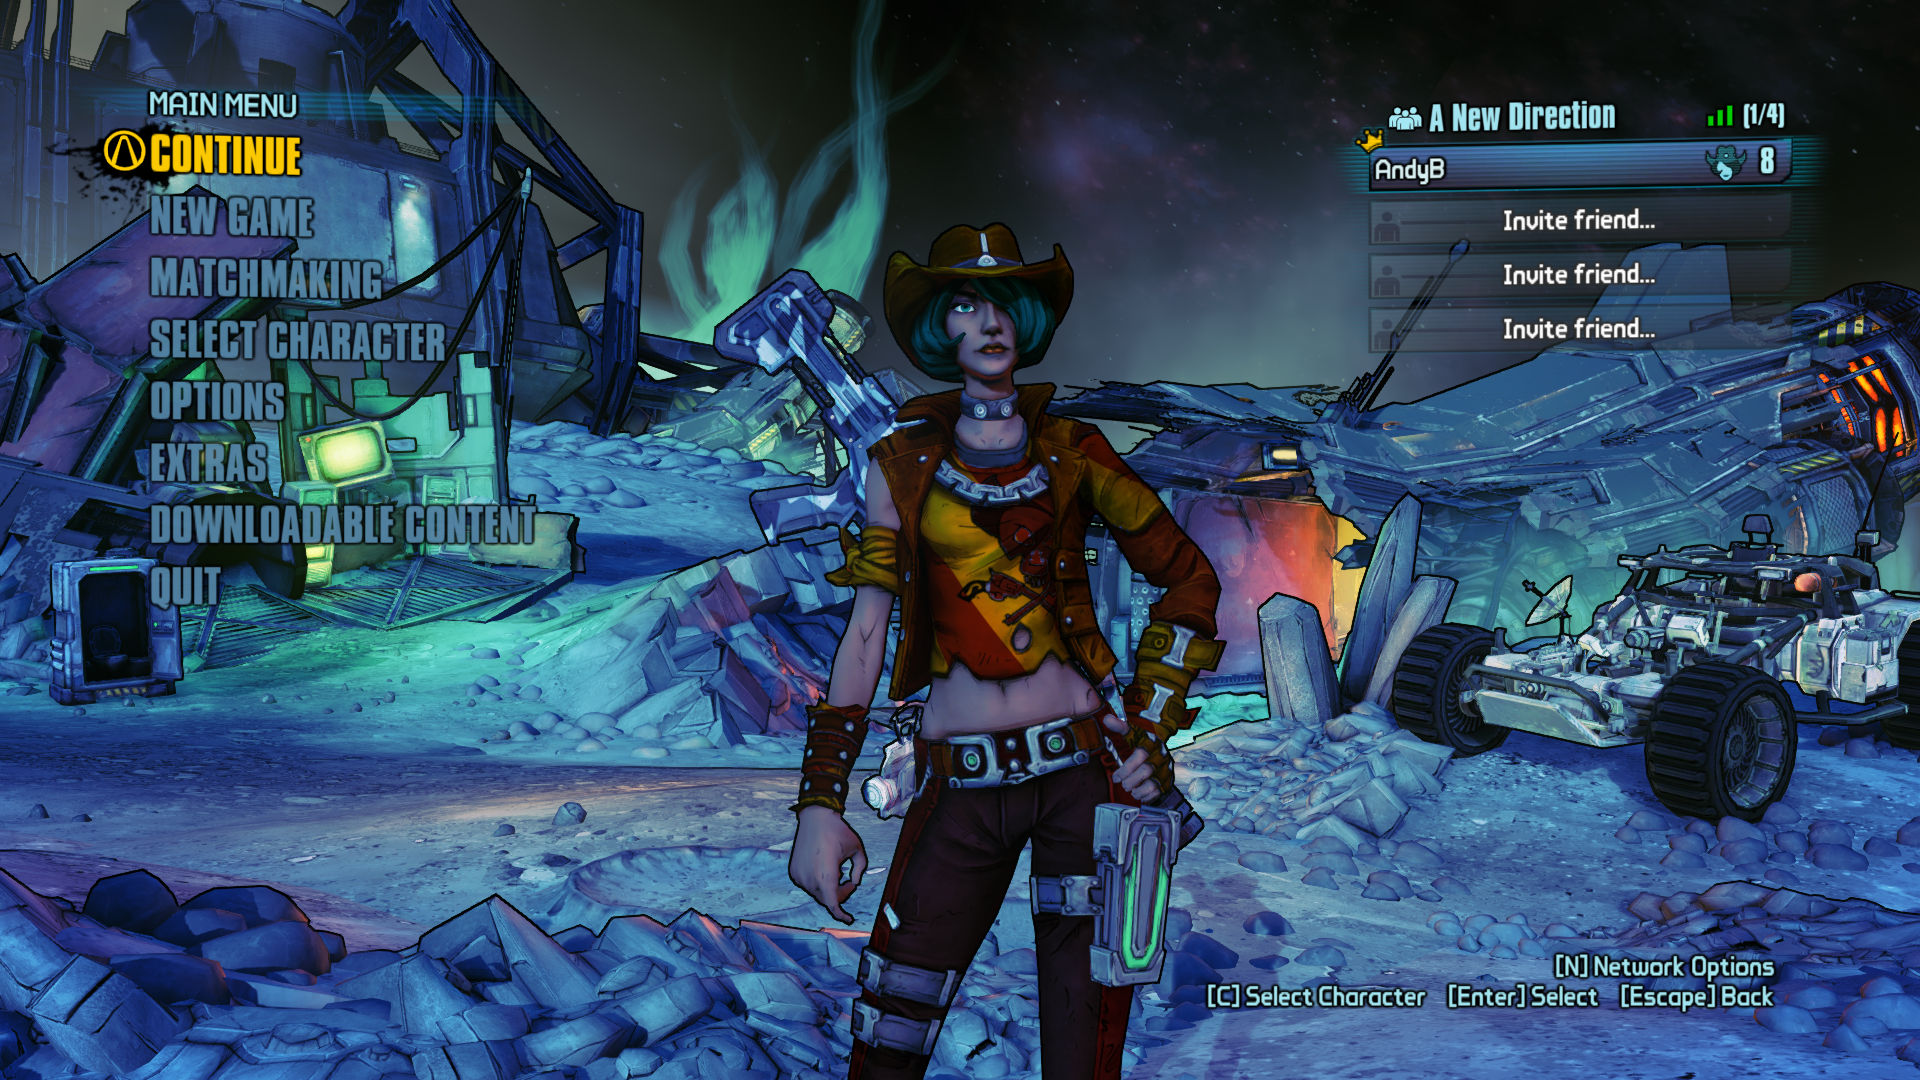 Borderlands 2 Amd Driver Download